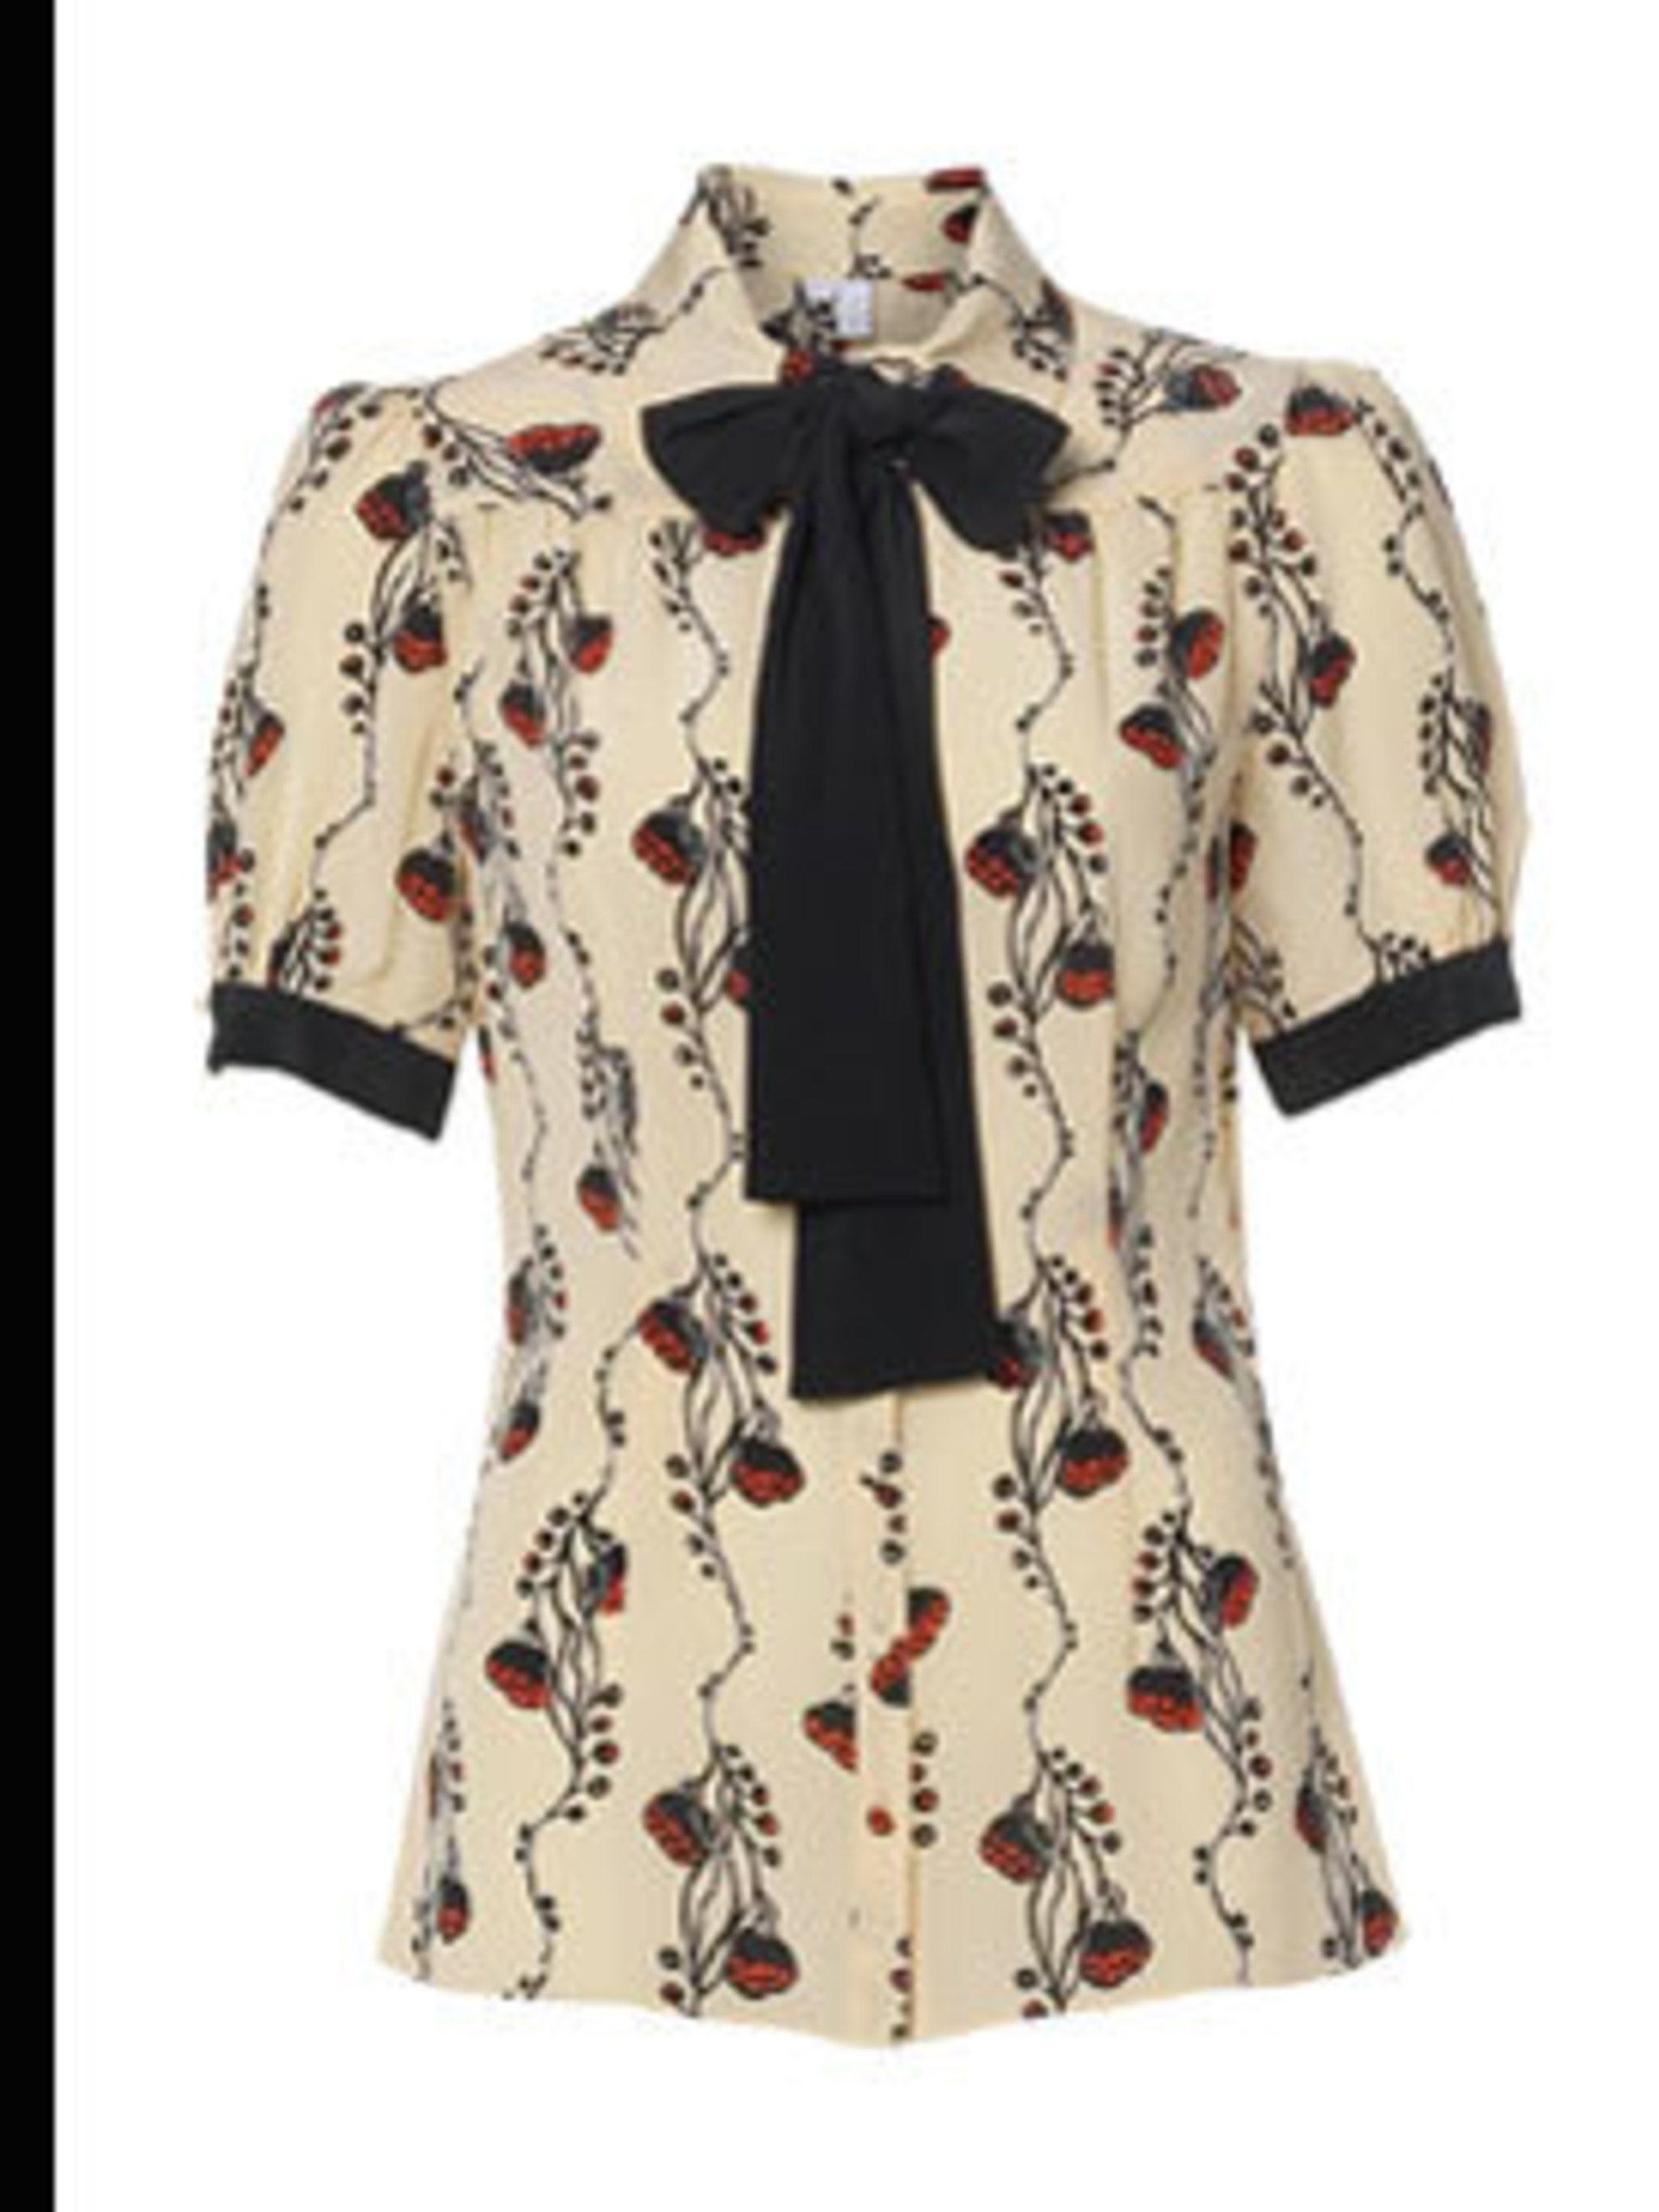 <p>Silk printed blouse, £45 from Untold at House of Fraser for stockists call 0870 1607270</p>